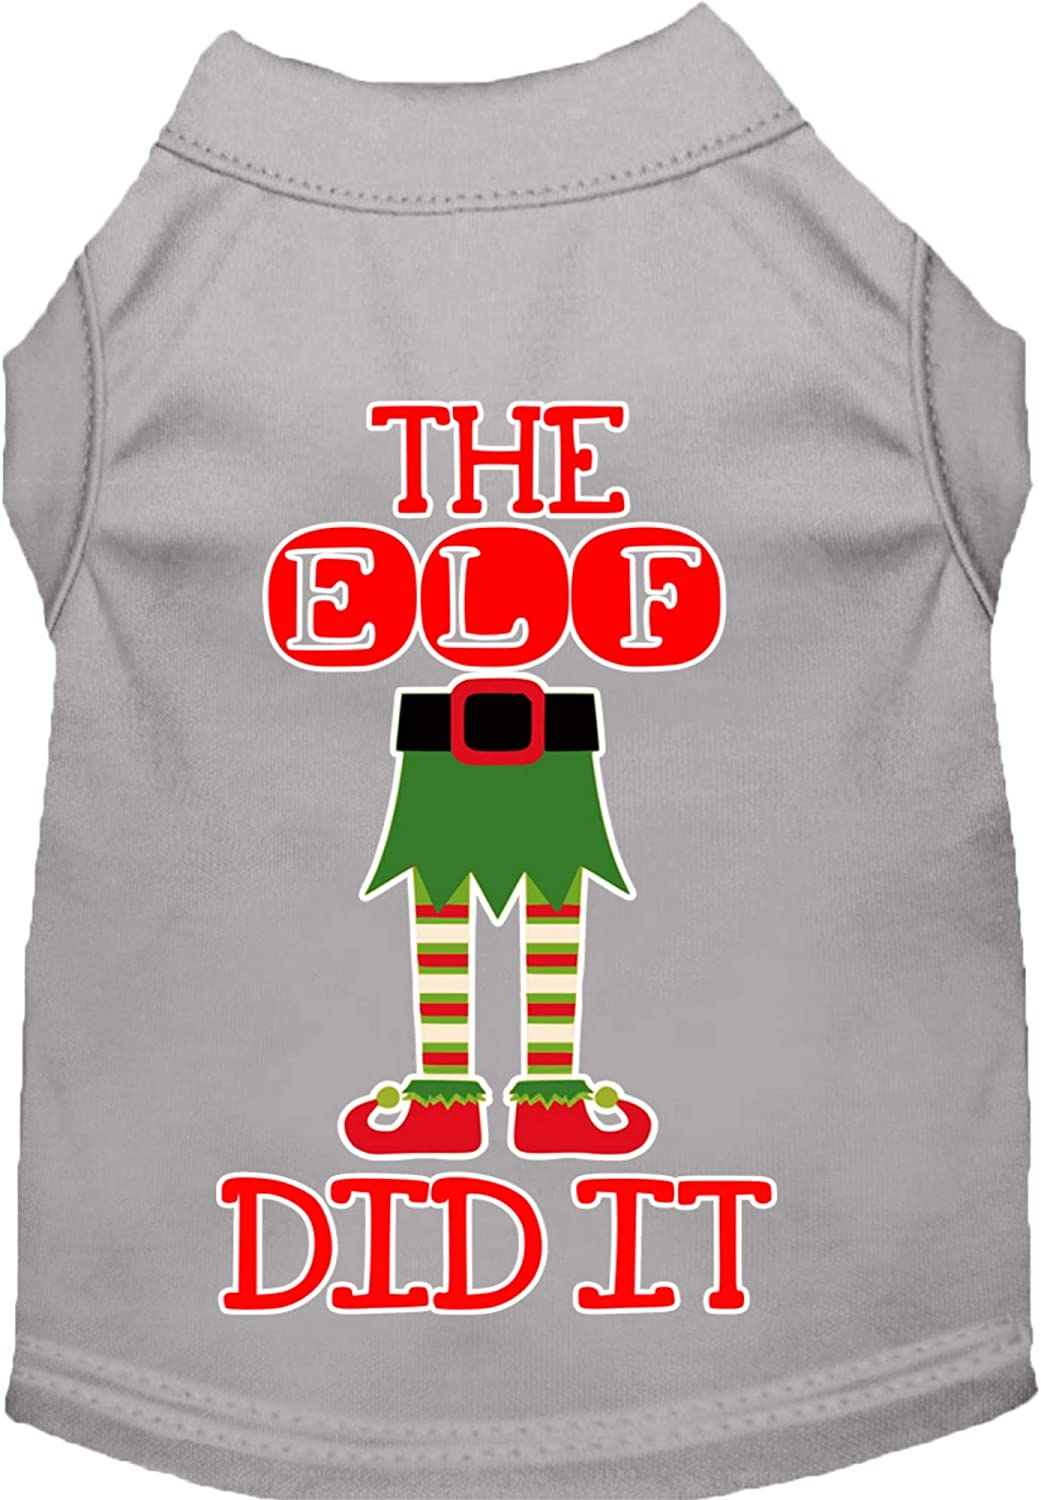 Mirage Pet Product The Elf Finally popular brand Did It XX Screen Grey Print Dog Shirt lowest price